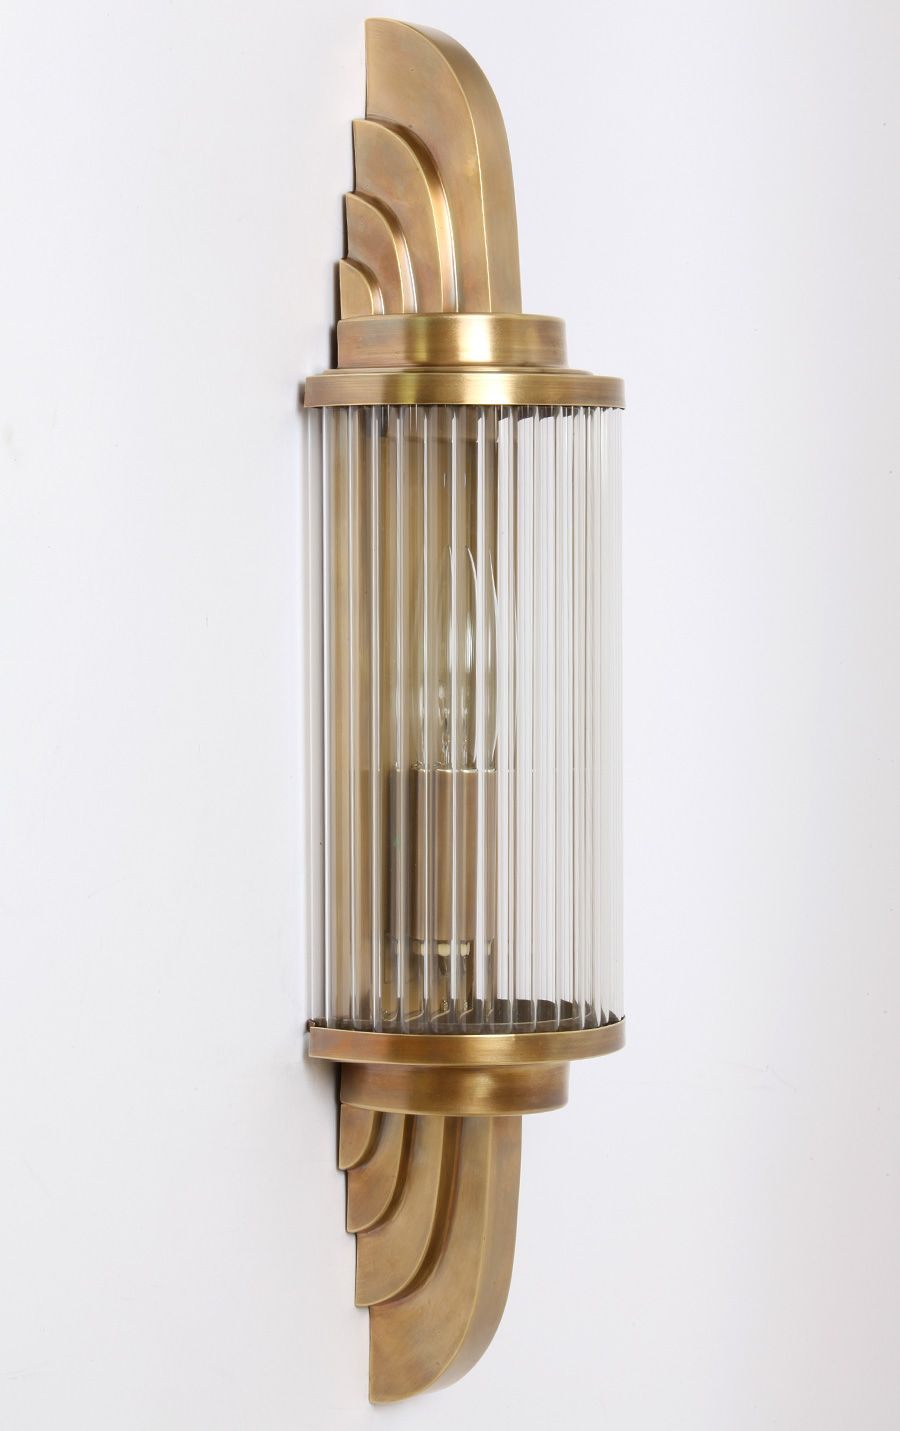 Art Deco Light Devoted Industrial Lighting Vintage Brass Wall Sconce Steampunk Lamp